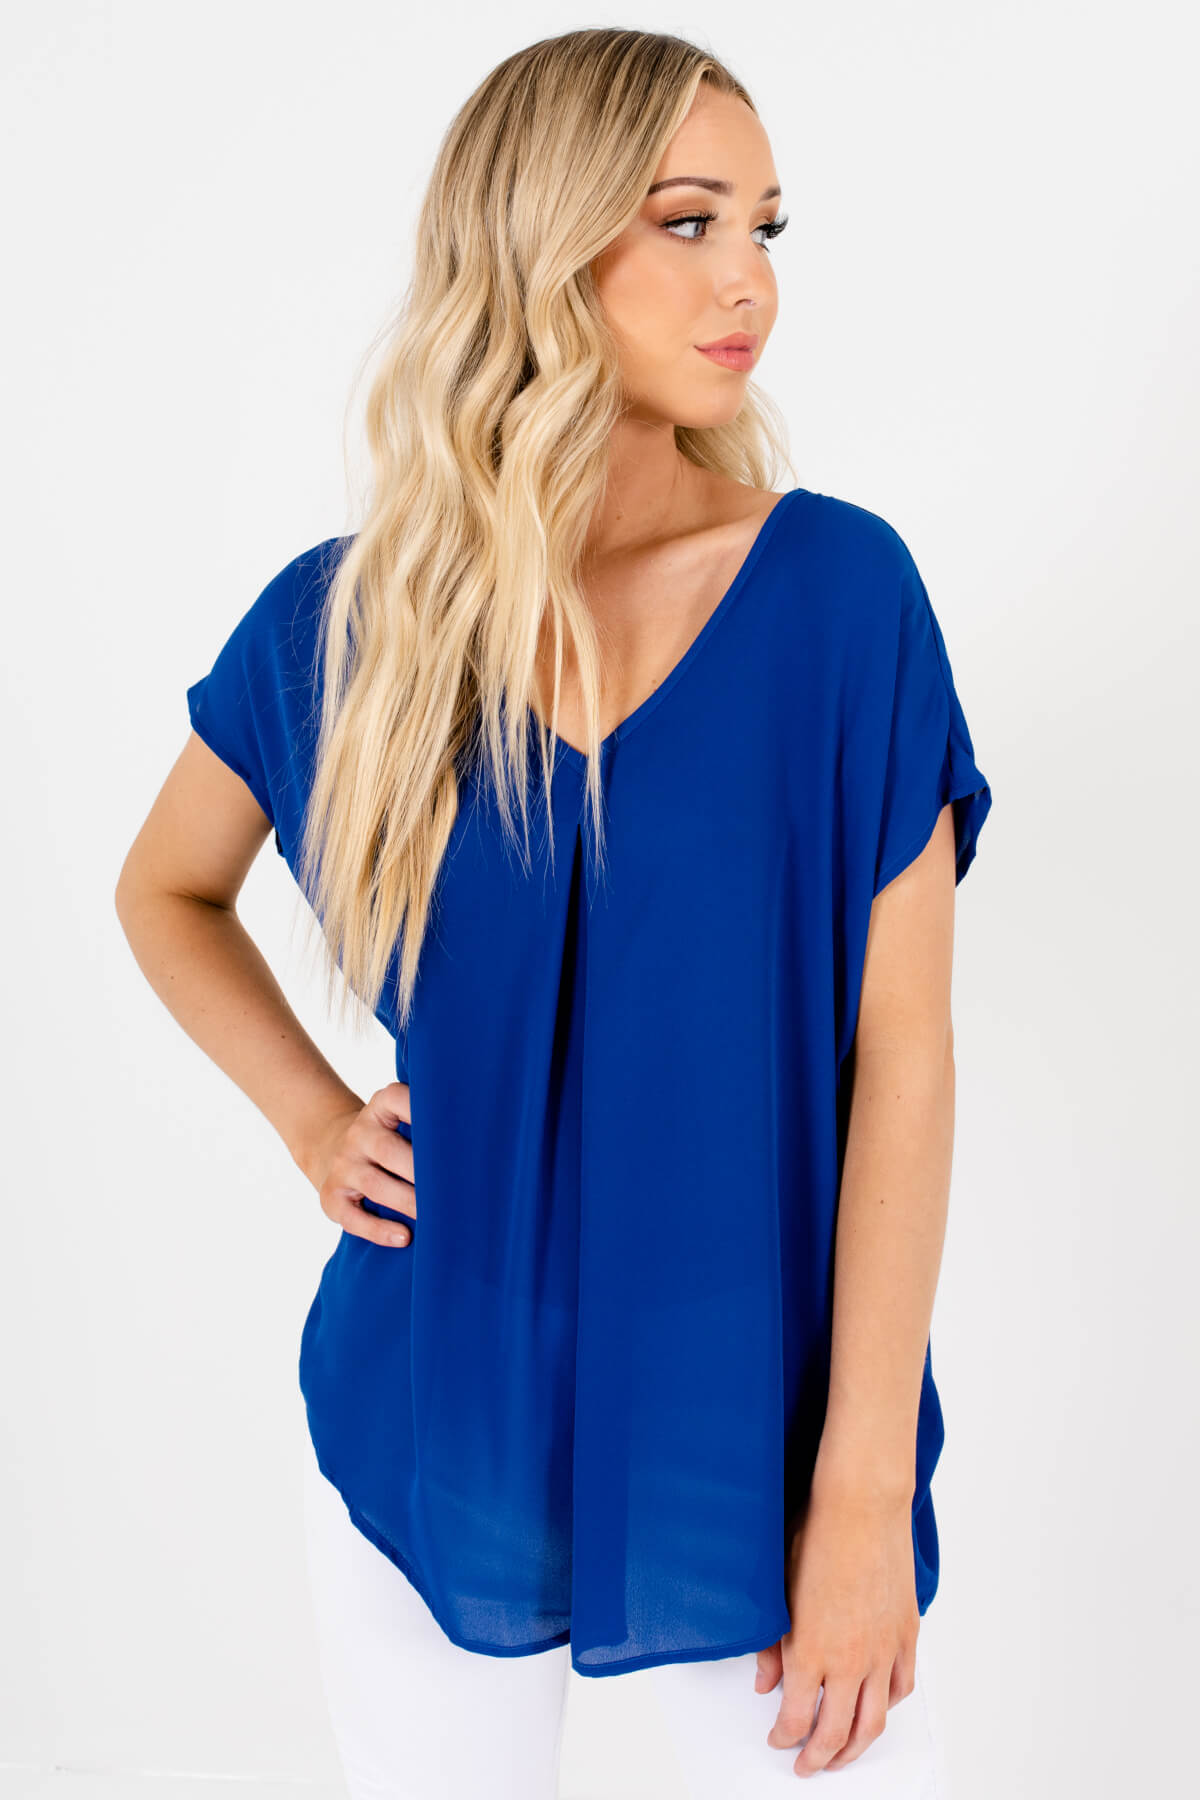 Royal Blue Lightweight High-Quality Boutique Blouses for Women